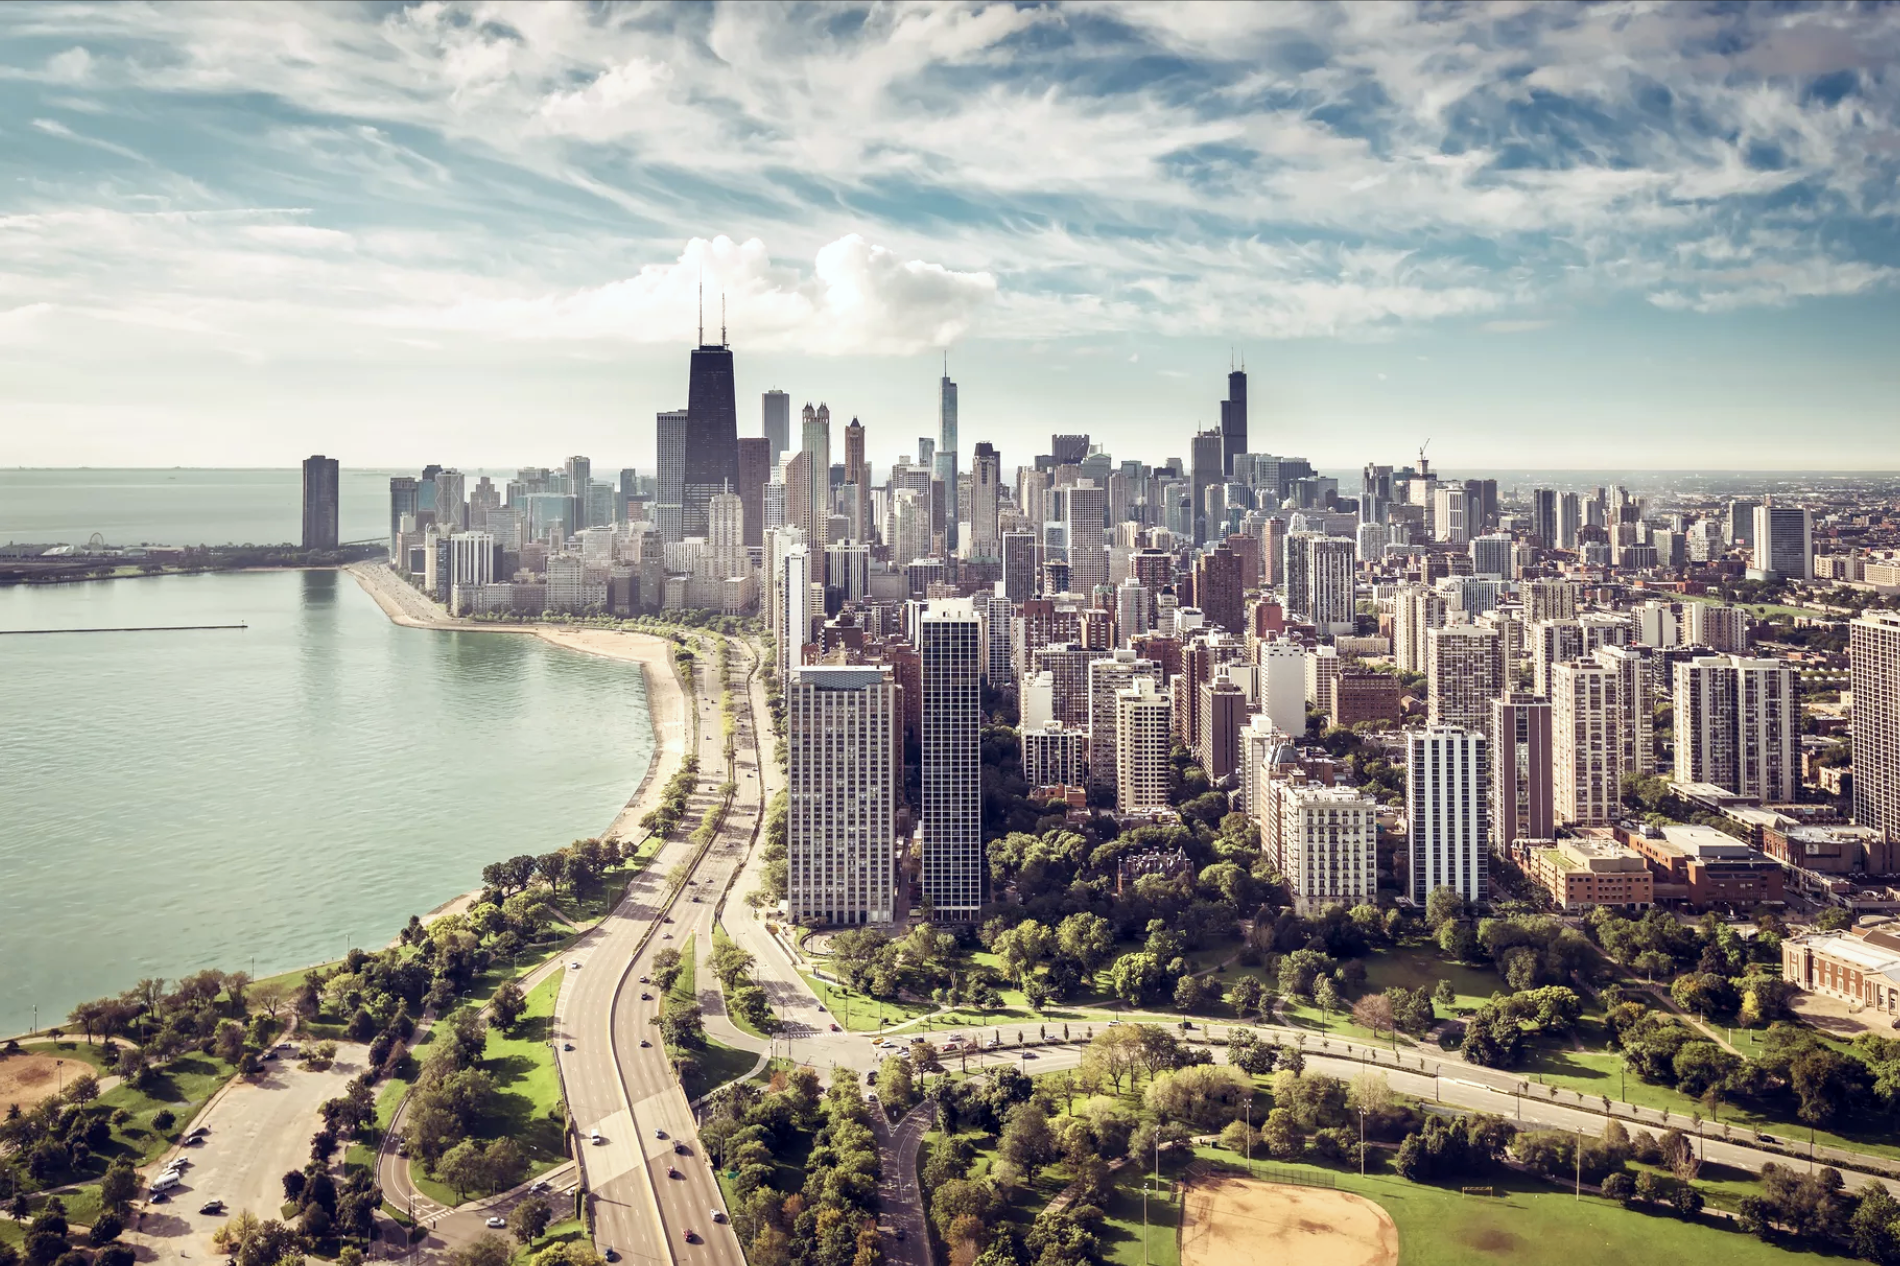 Chicago's new demographics: 'A third San Francisco, two-thirds Detroit'